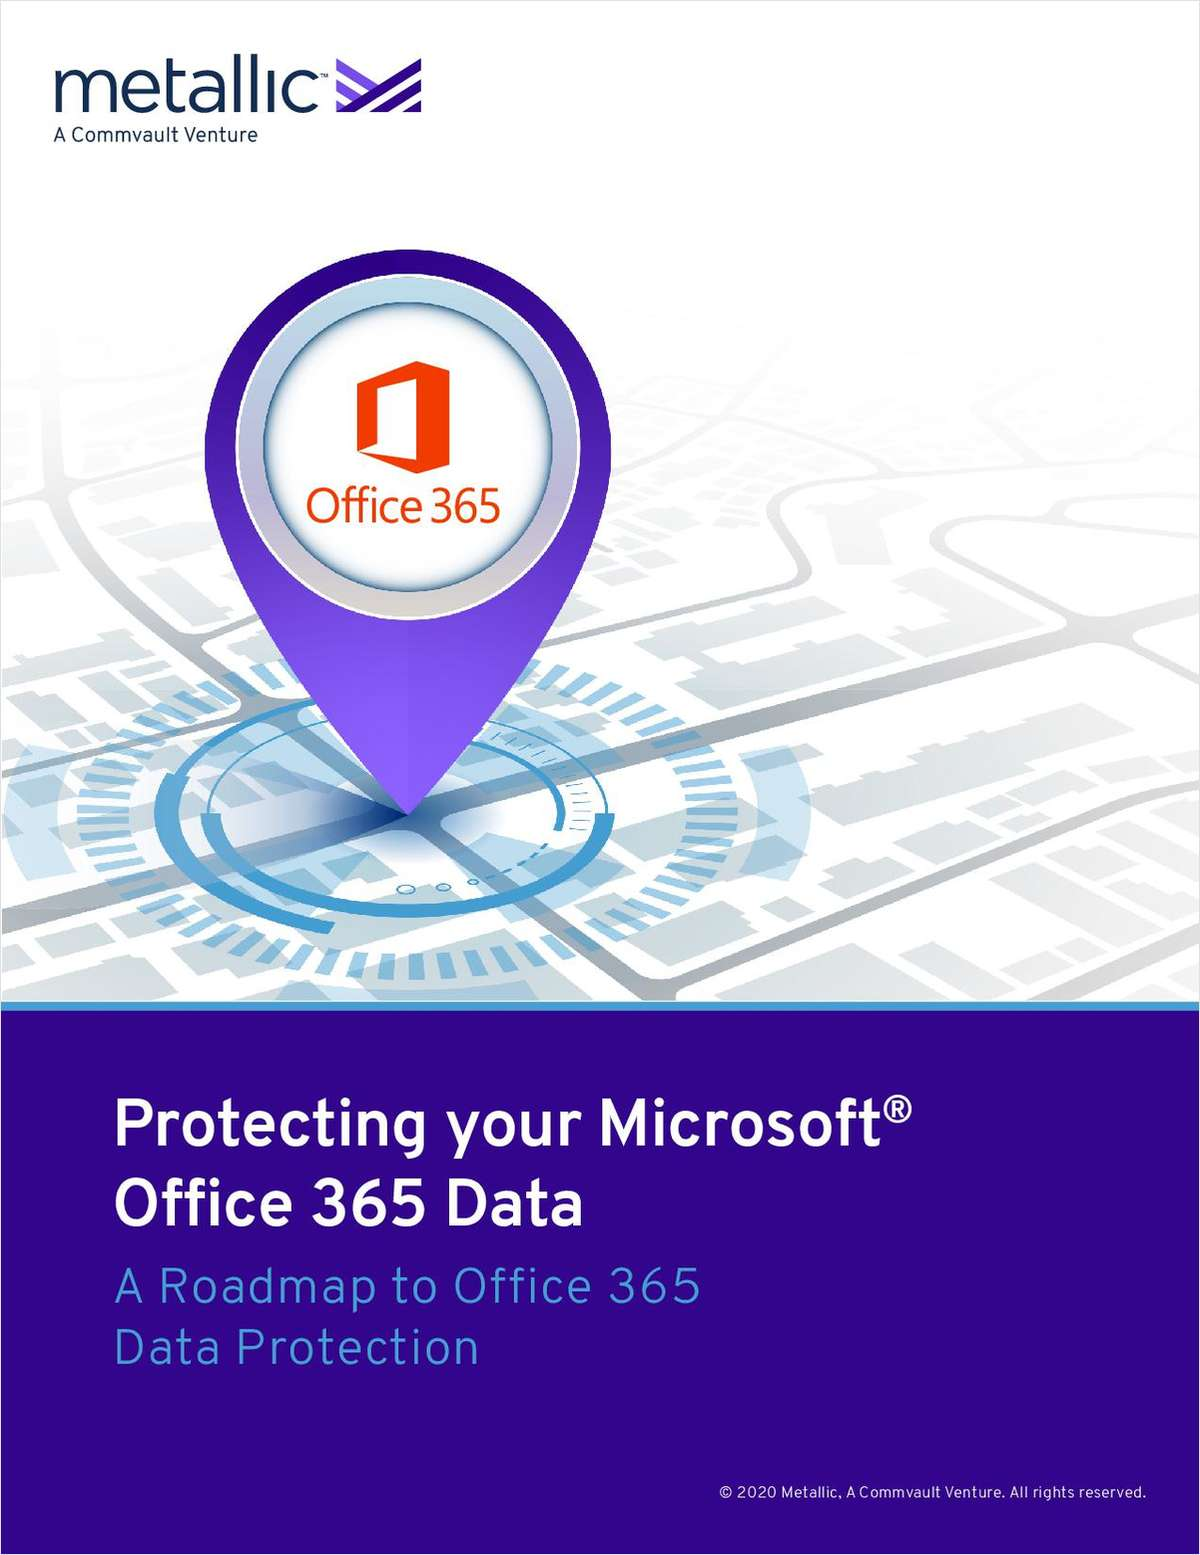 How to Protect your Microsoft® Office 365 Data